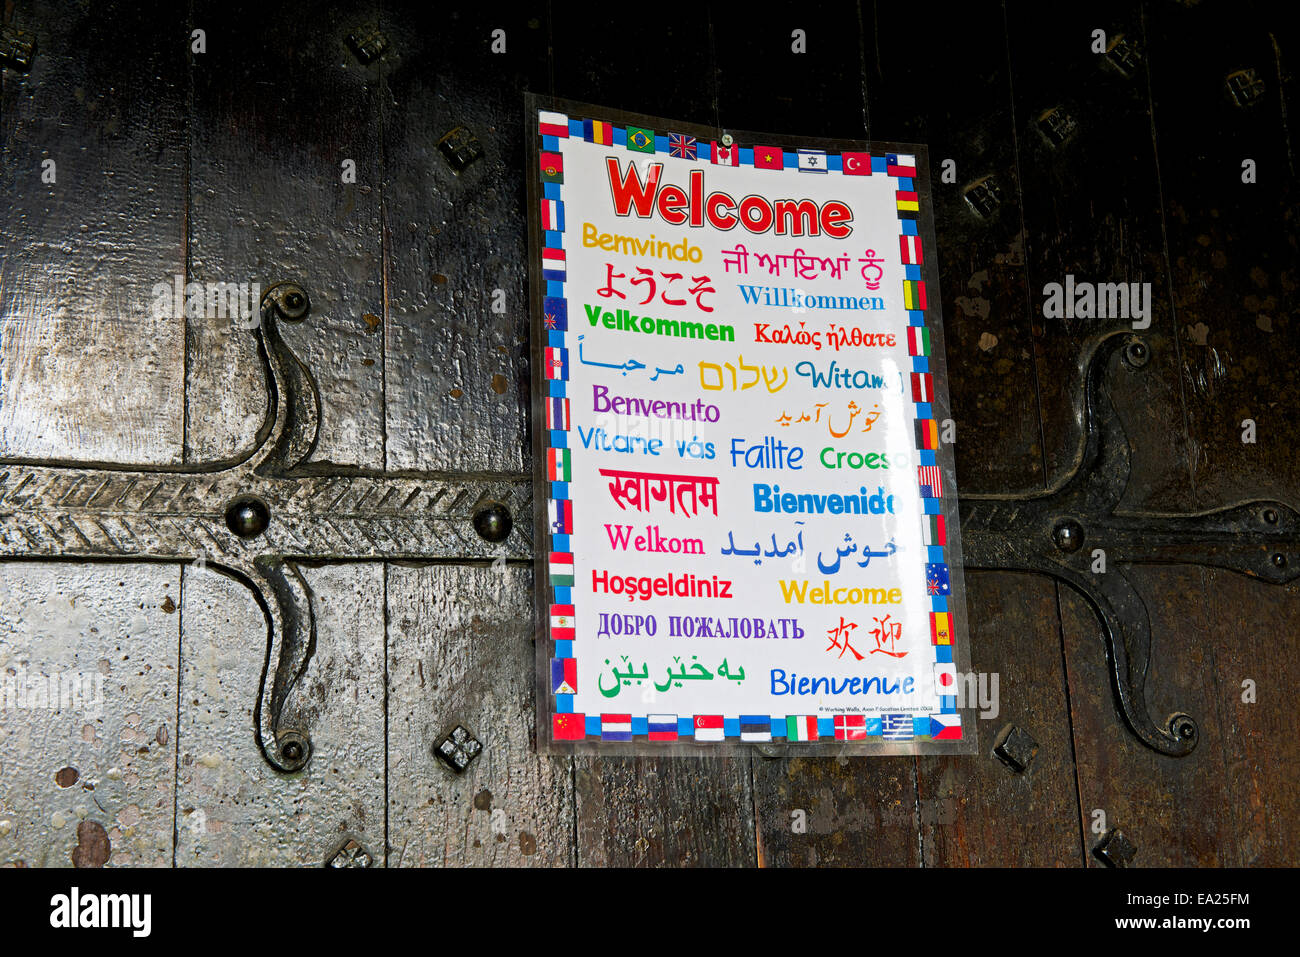 Welcome sign, in many languages, on church door - Stock Image